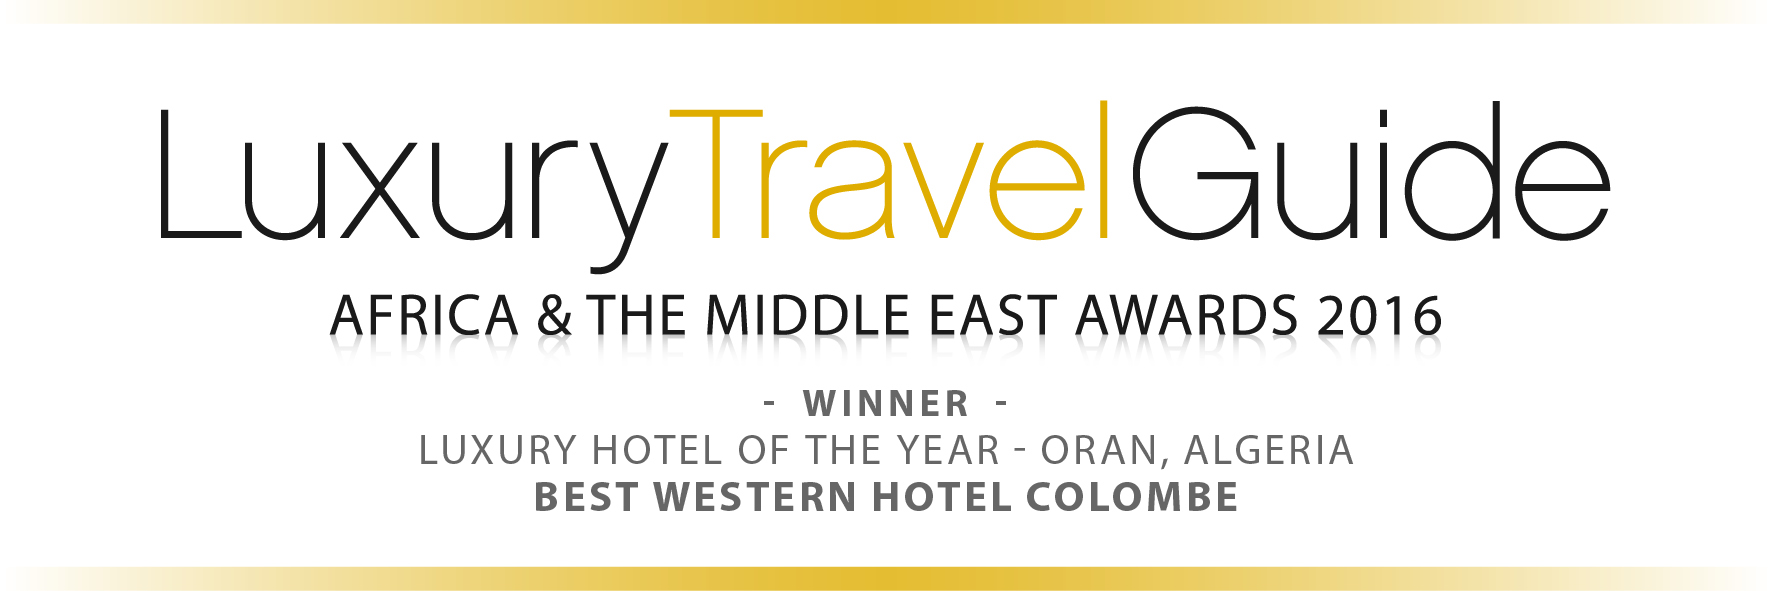 Award Luxury Travel Guide 2016